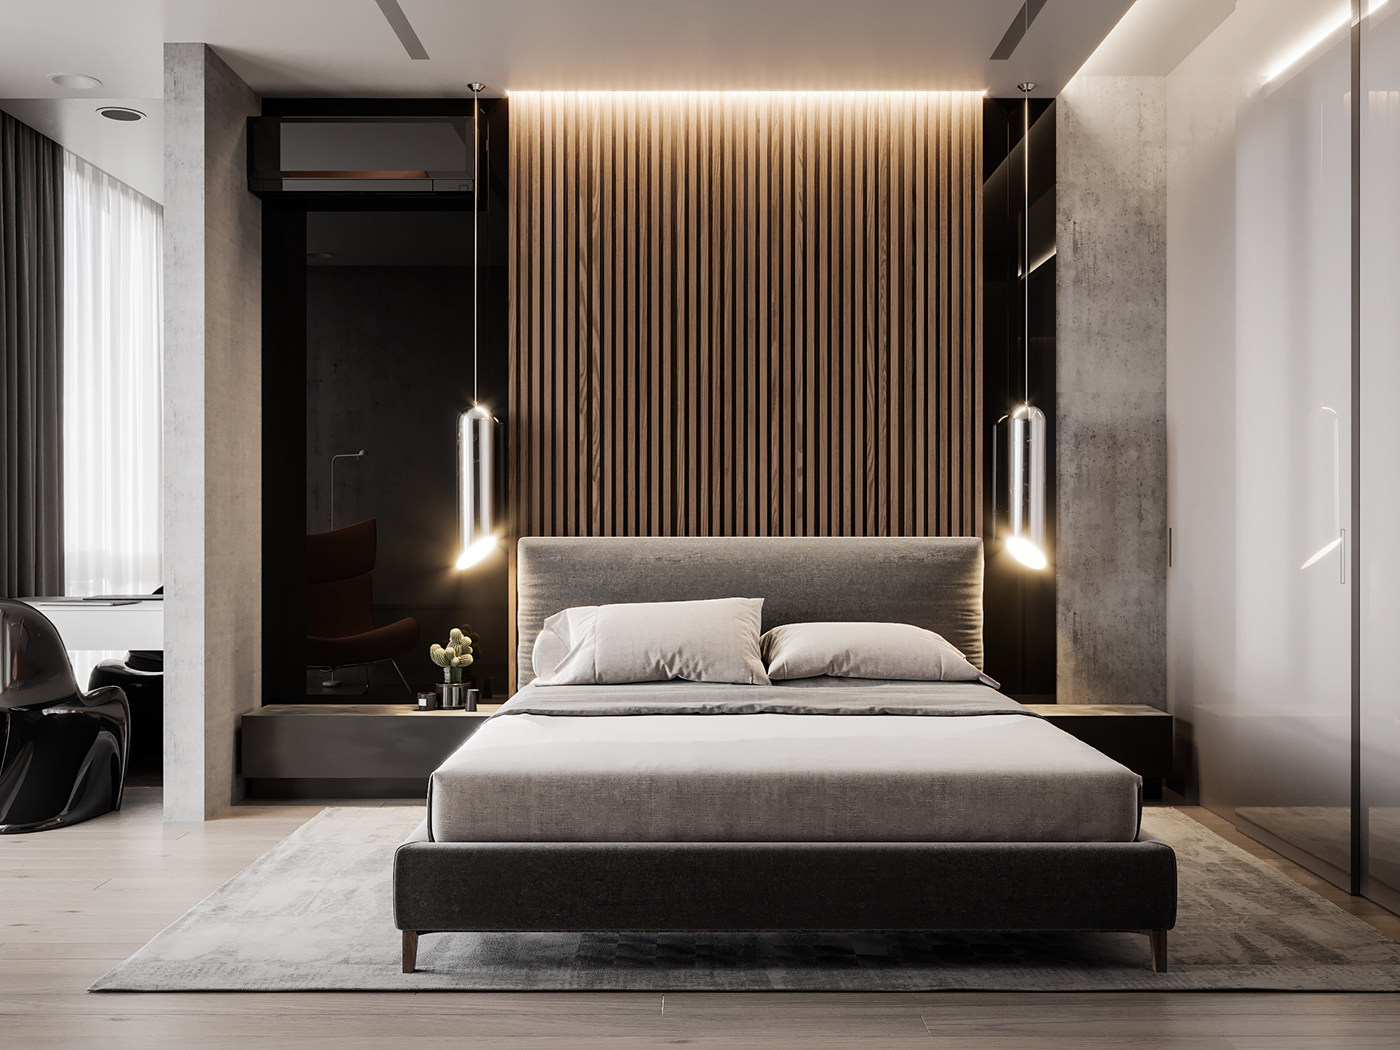 interior visualization on behance. Black Bedroom Furniture Sets. Home Design Ideas